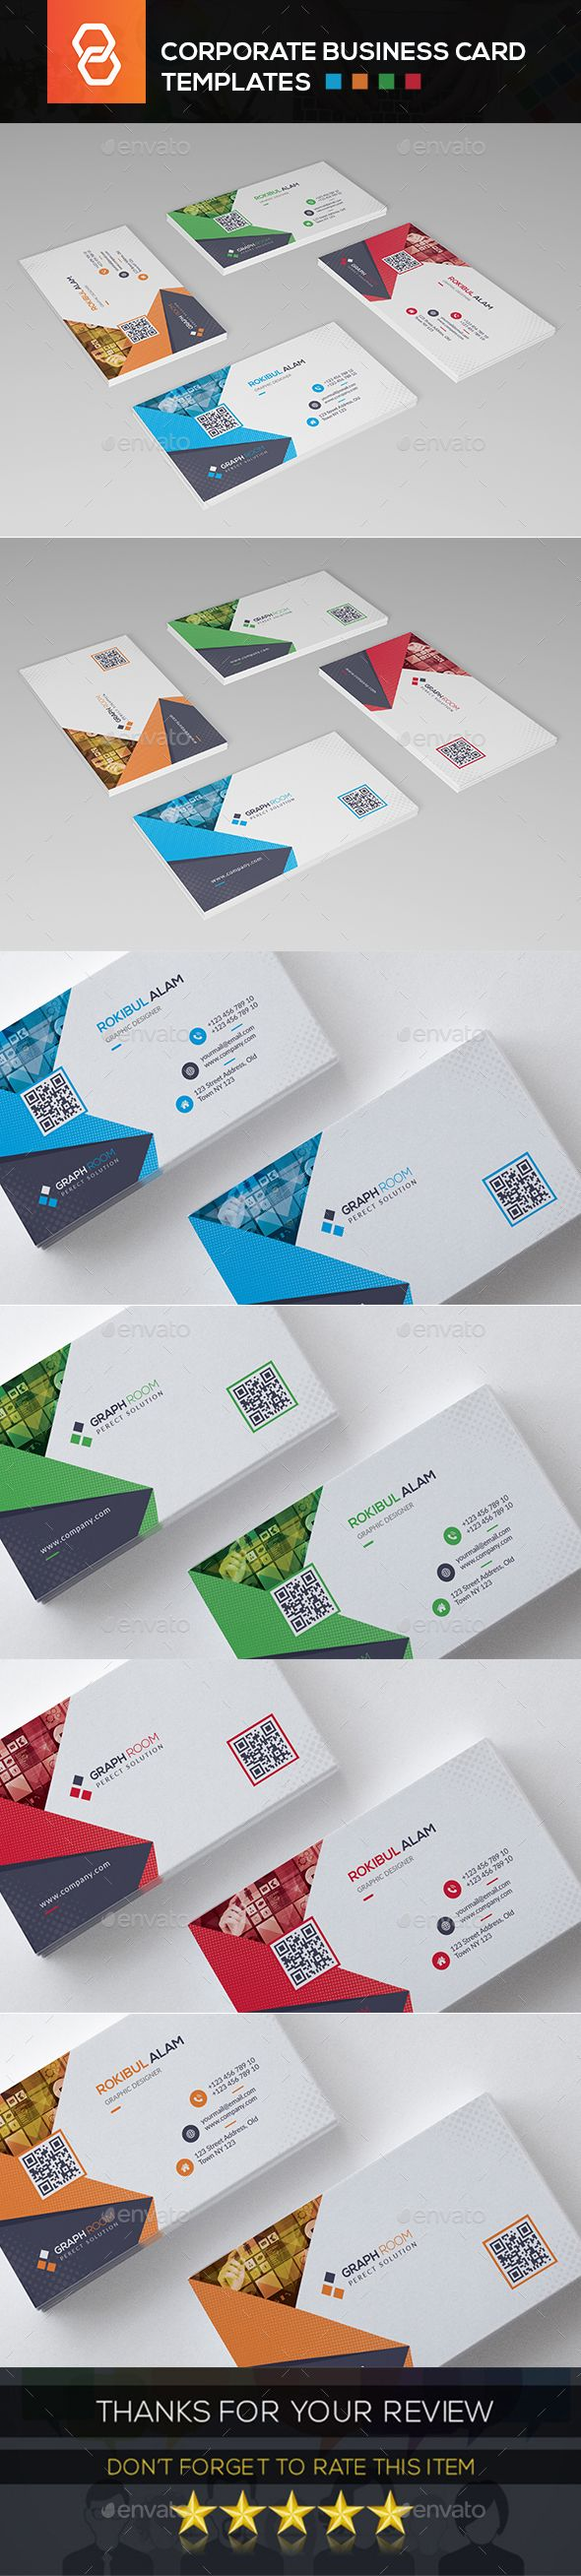 Corporate Business Card Template Psd High Detailed Background And 4 Different Color Corporate Business Card Printing Business Cards Business Card Template Psd